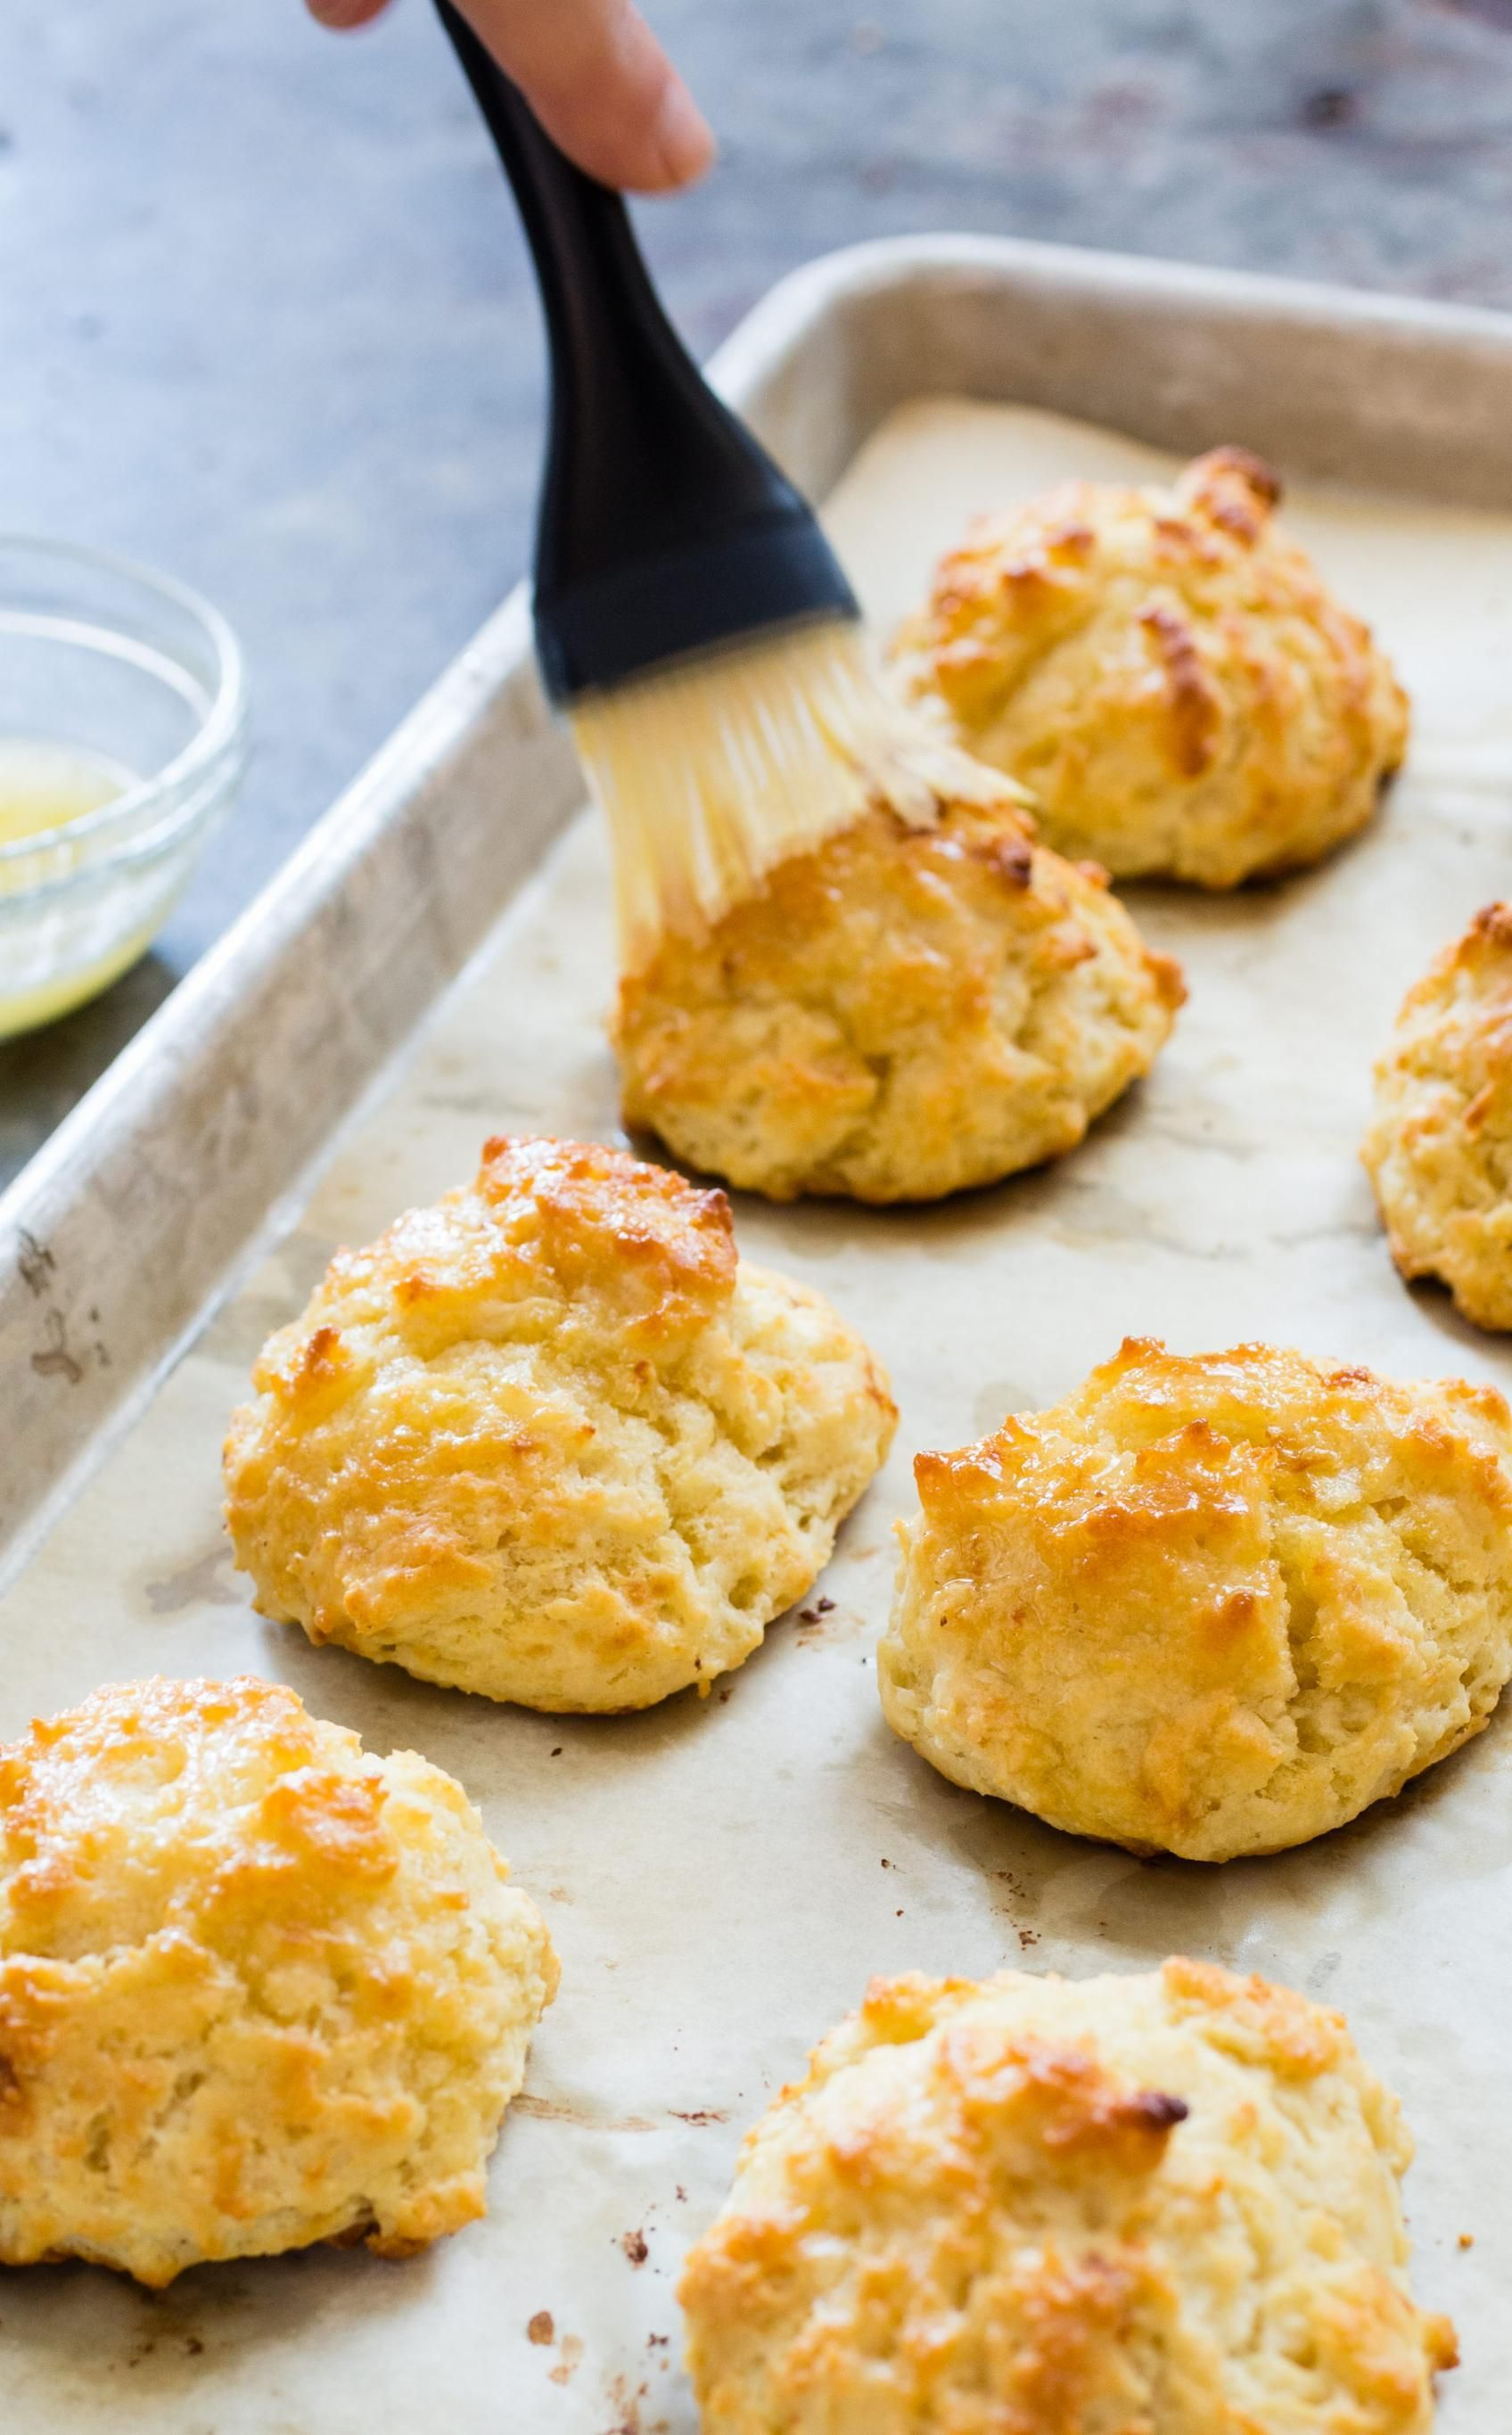 Best Drop Biscuits These Are The Best Who Knew That Buttermilk Biscuits Could Be This Easy And Delicio Drop Biscuits Biscuit Recipe Buttermilk Drop Biscuits